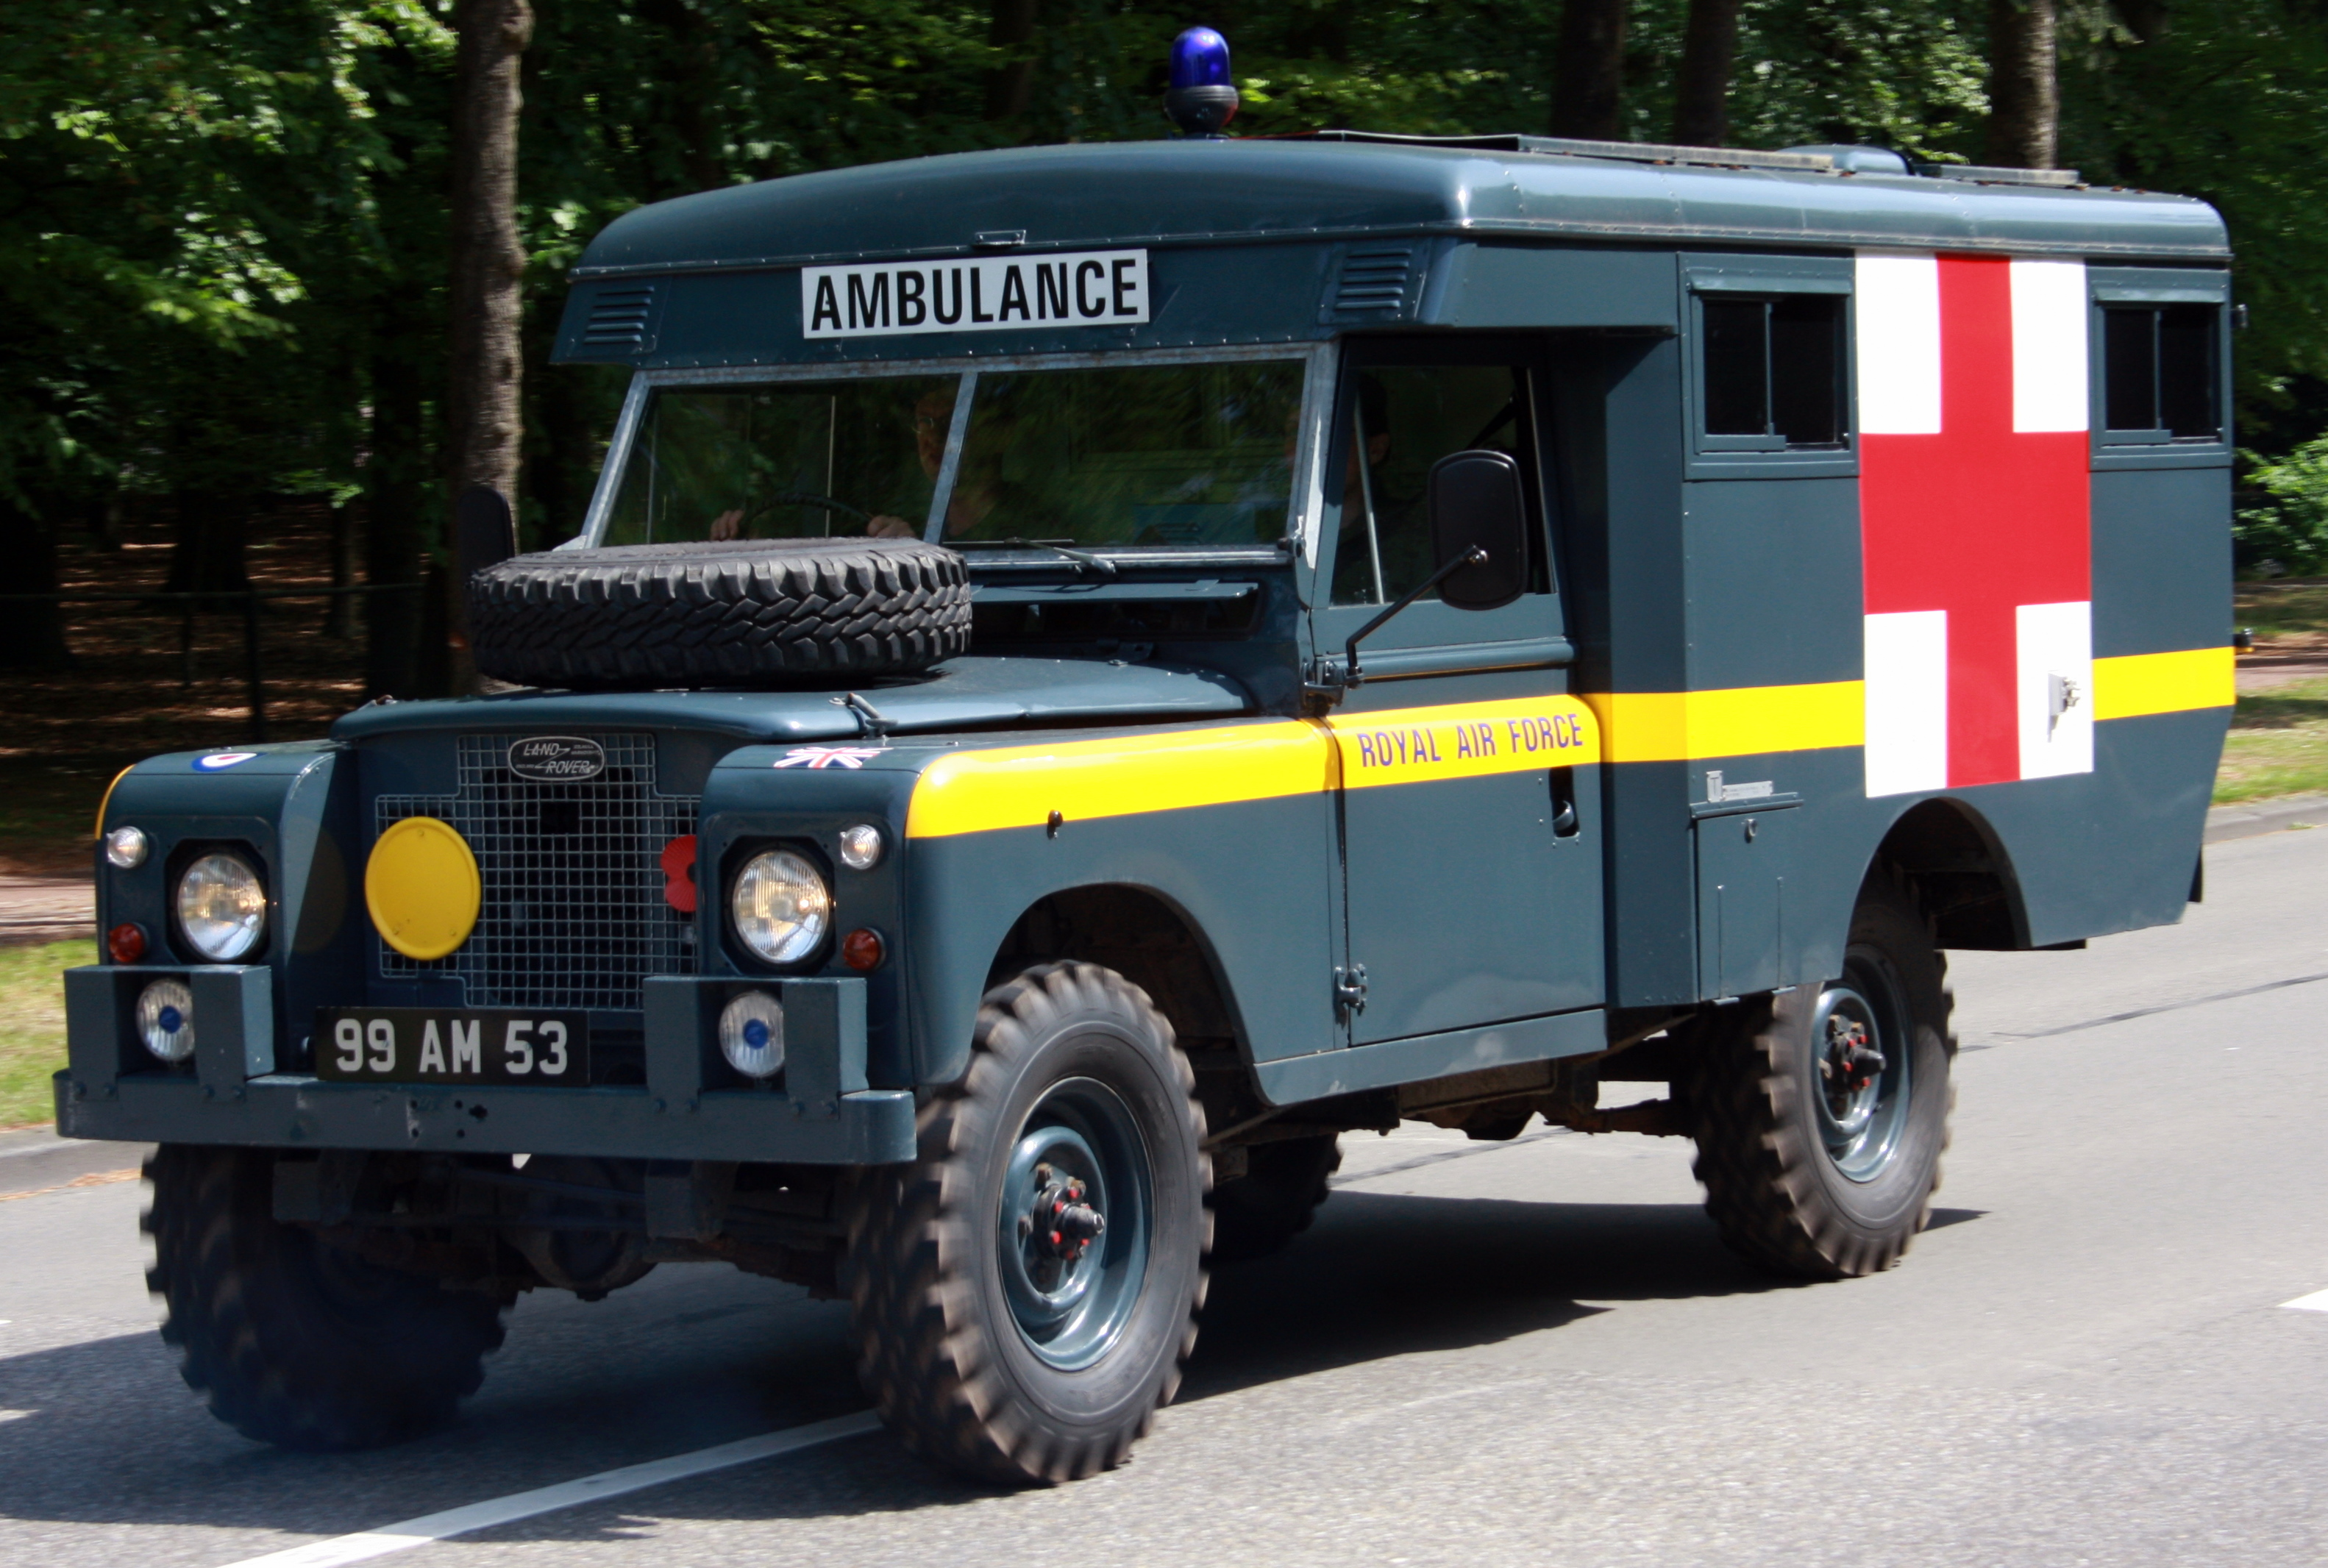 Land Rover Build Your Own >> File:Ambulance landrover.jpg - Wikimedia Commons